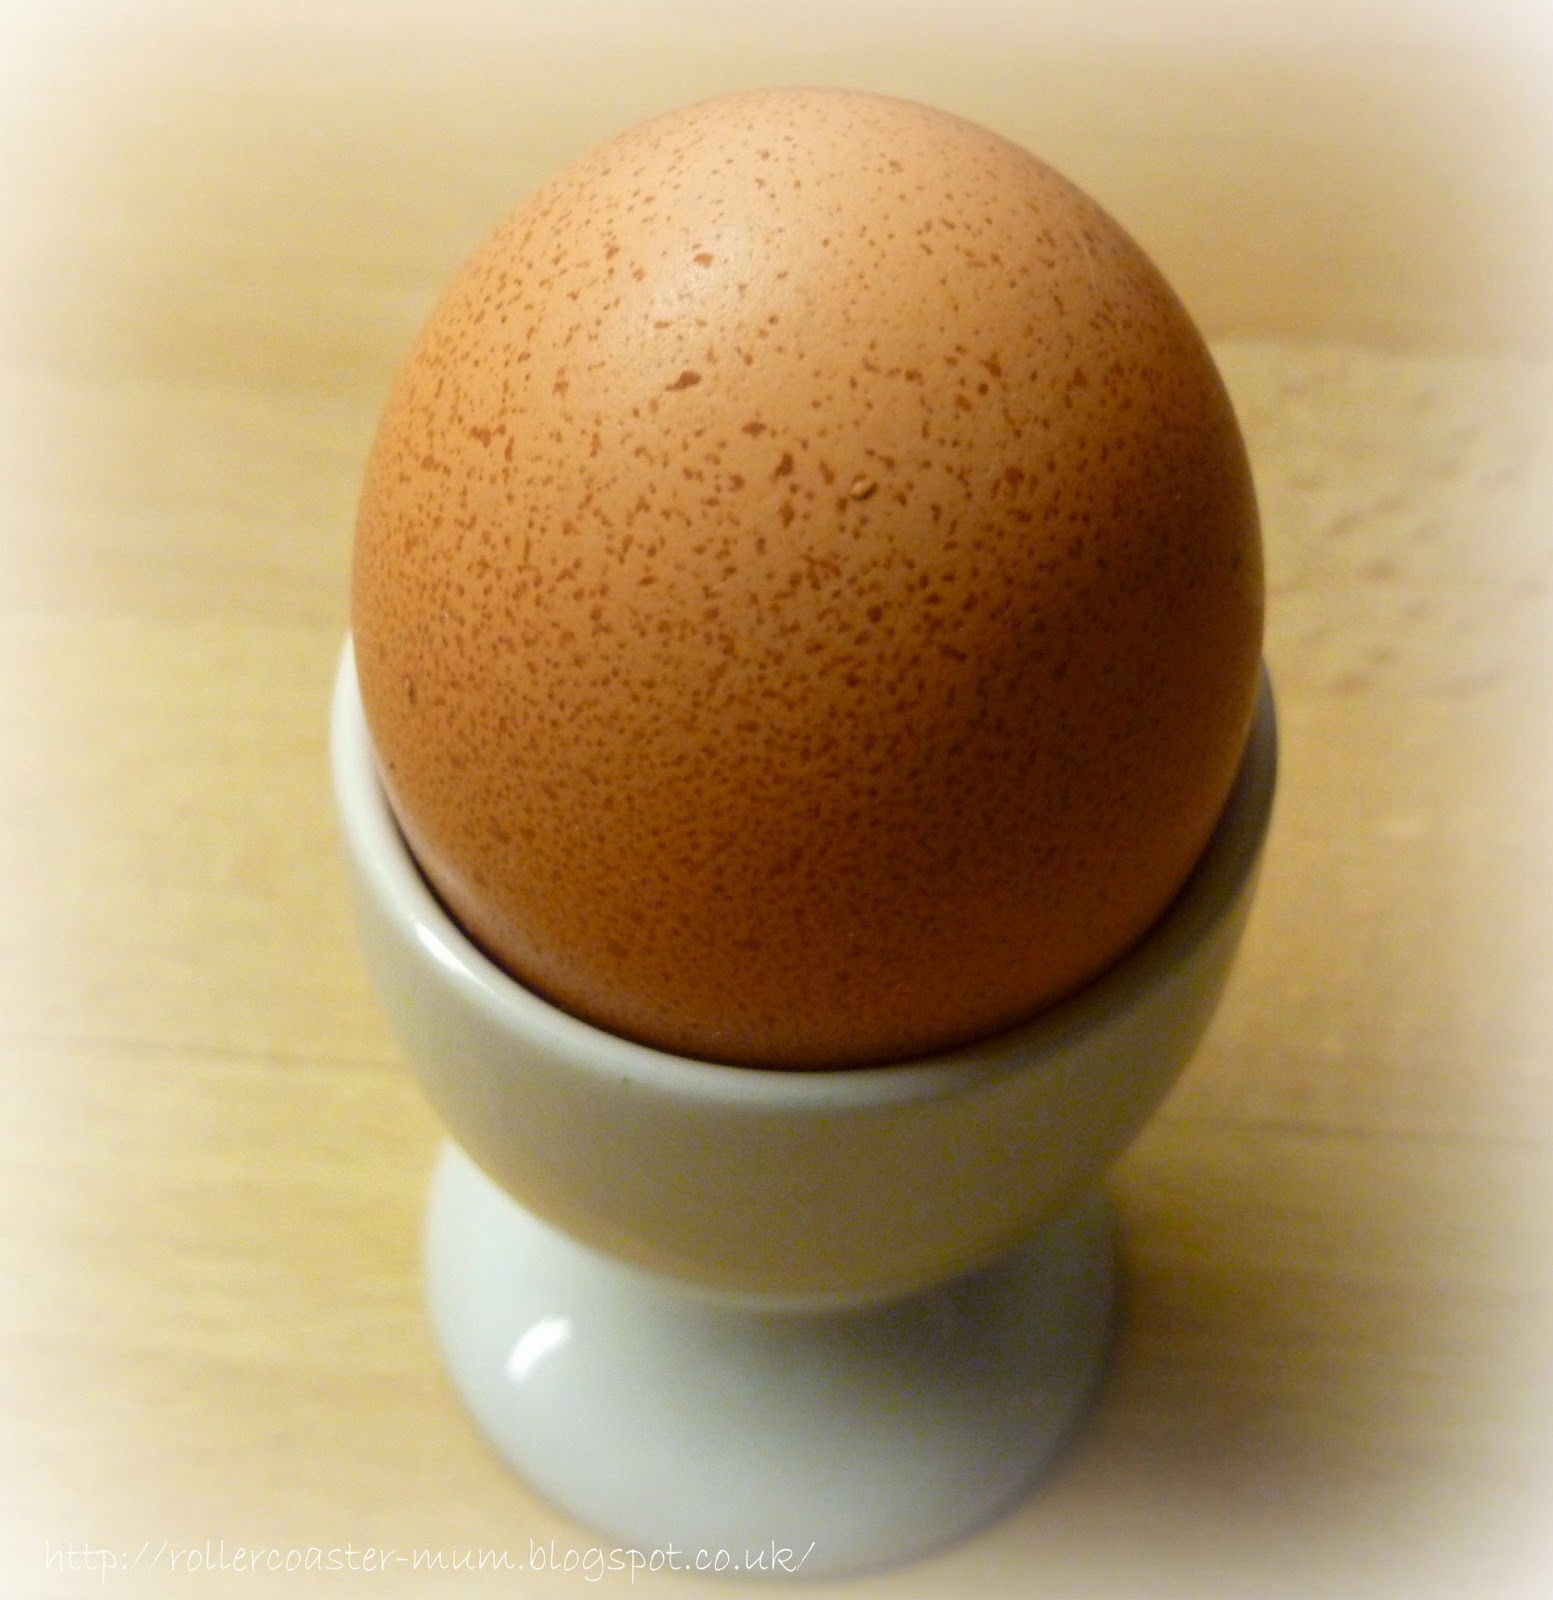 #alphabetphoto, E is for Egg